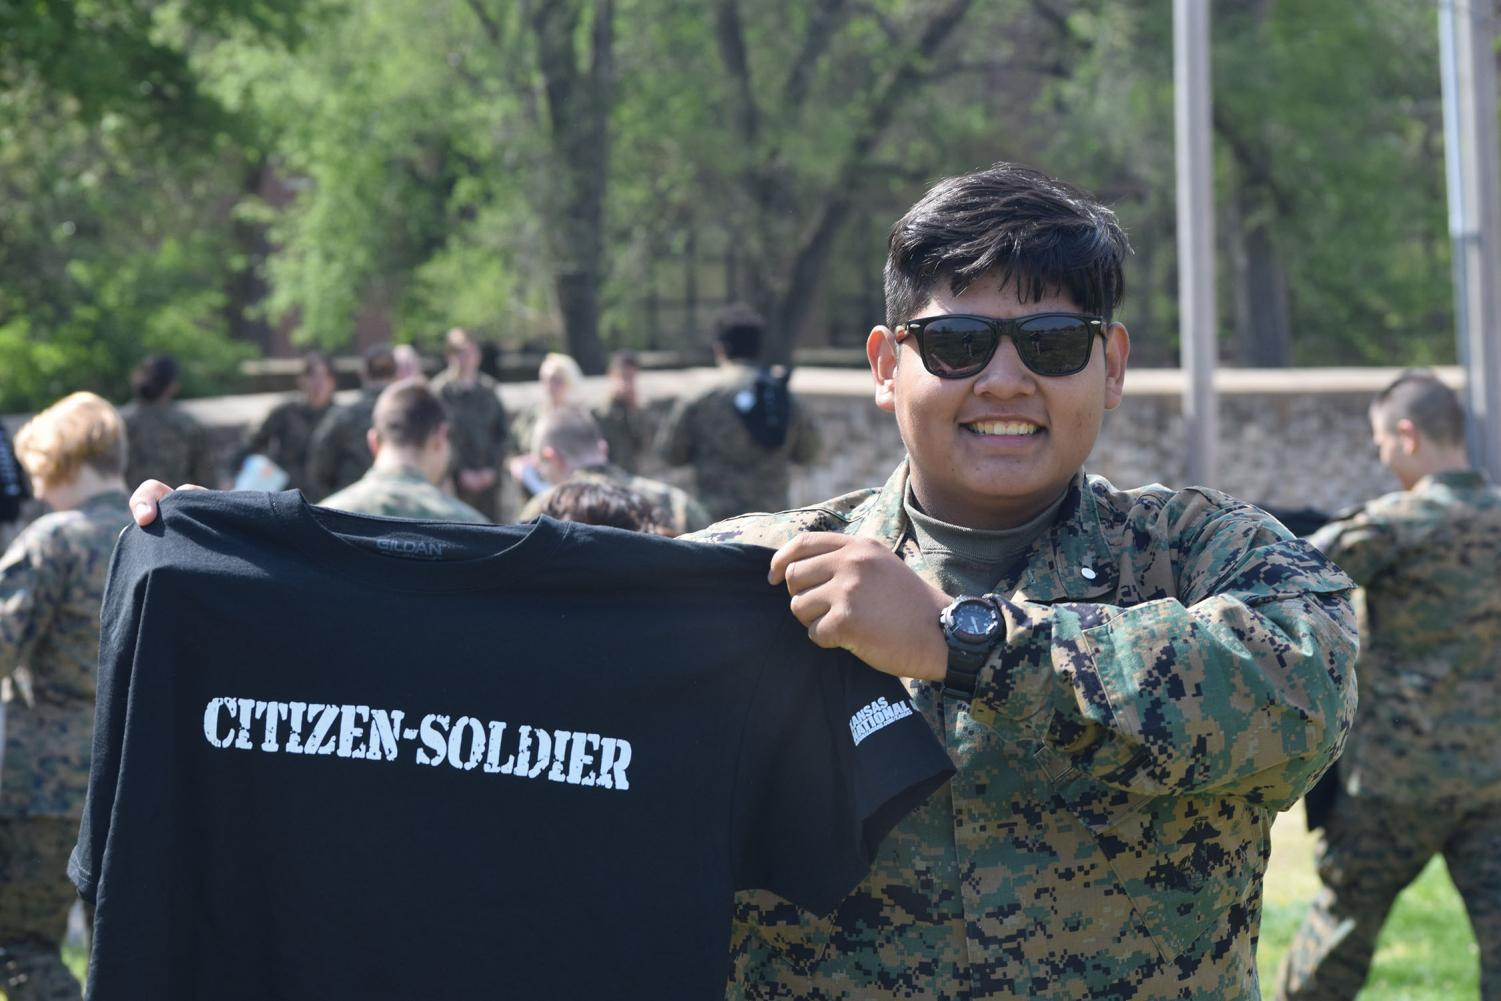 Cadets+who+went+on+the+ride+were+gifted+National+Guard+T-Shirts+and+coffee+mugs.+